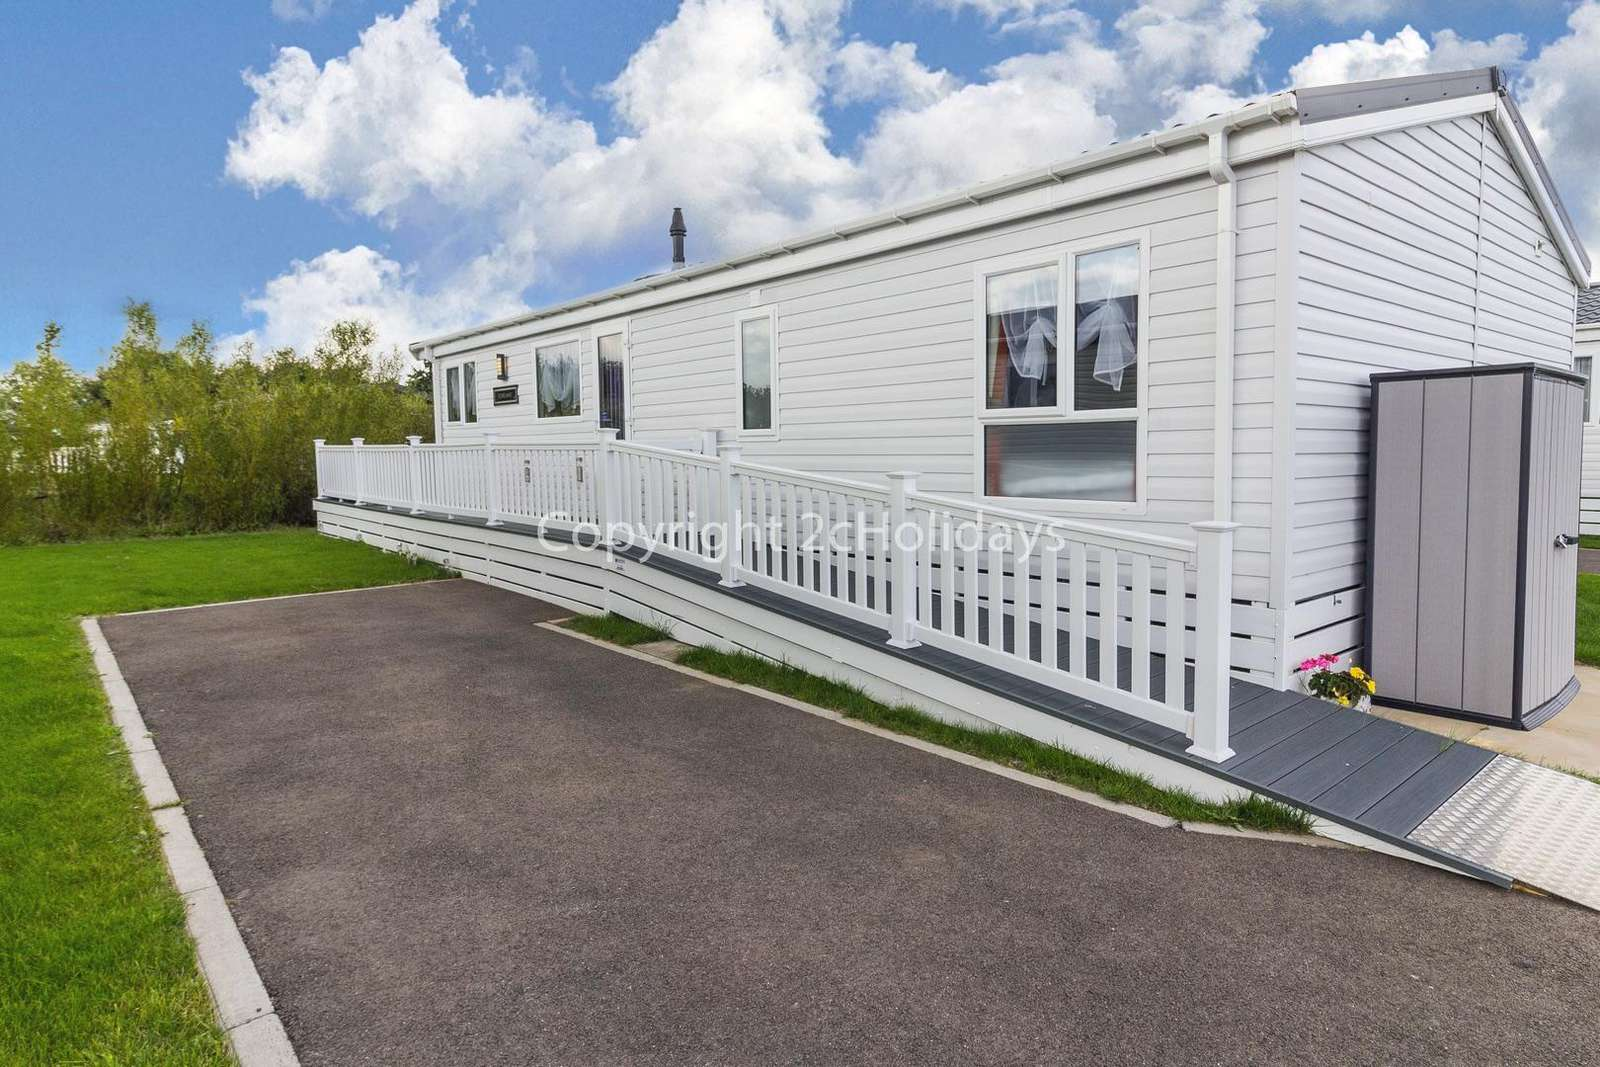 Parking available next to the accommodation on hard standing ground!